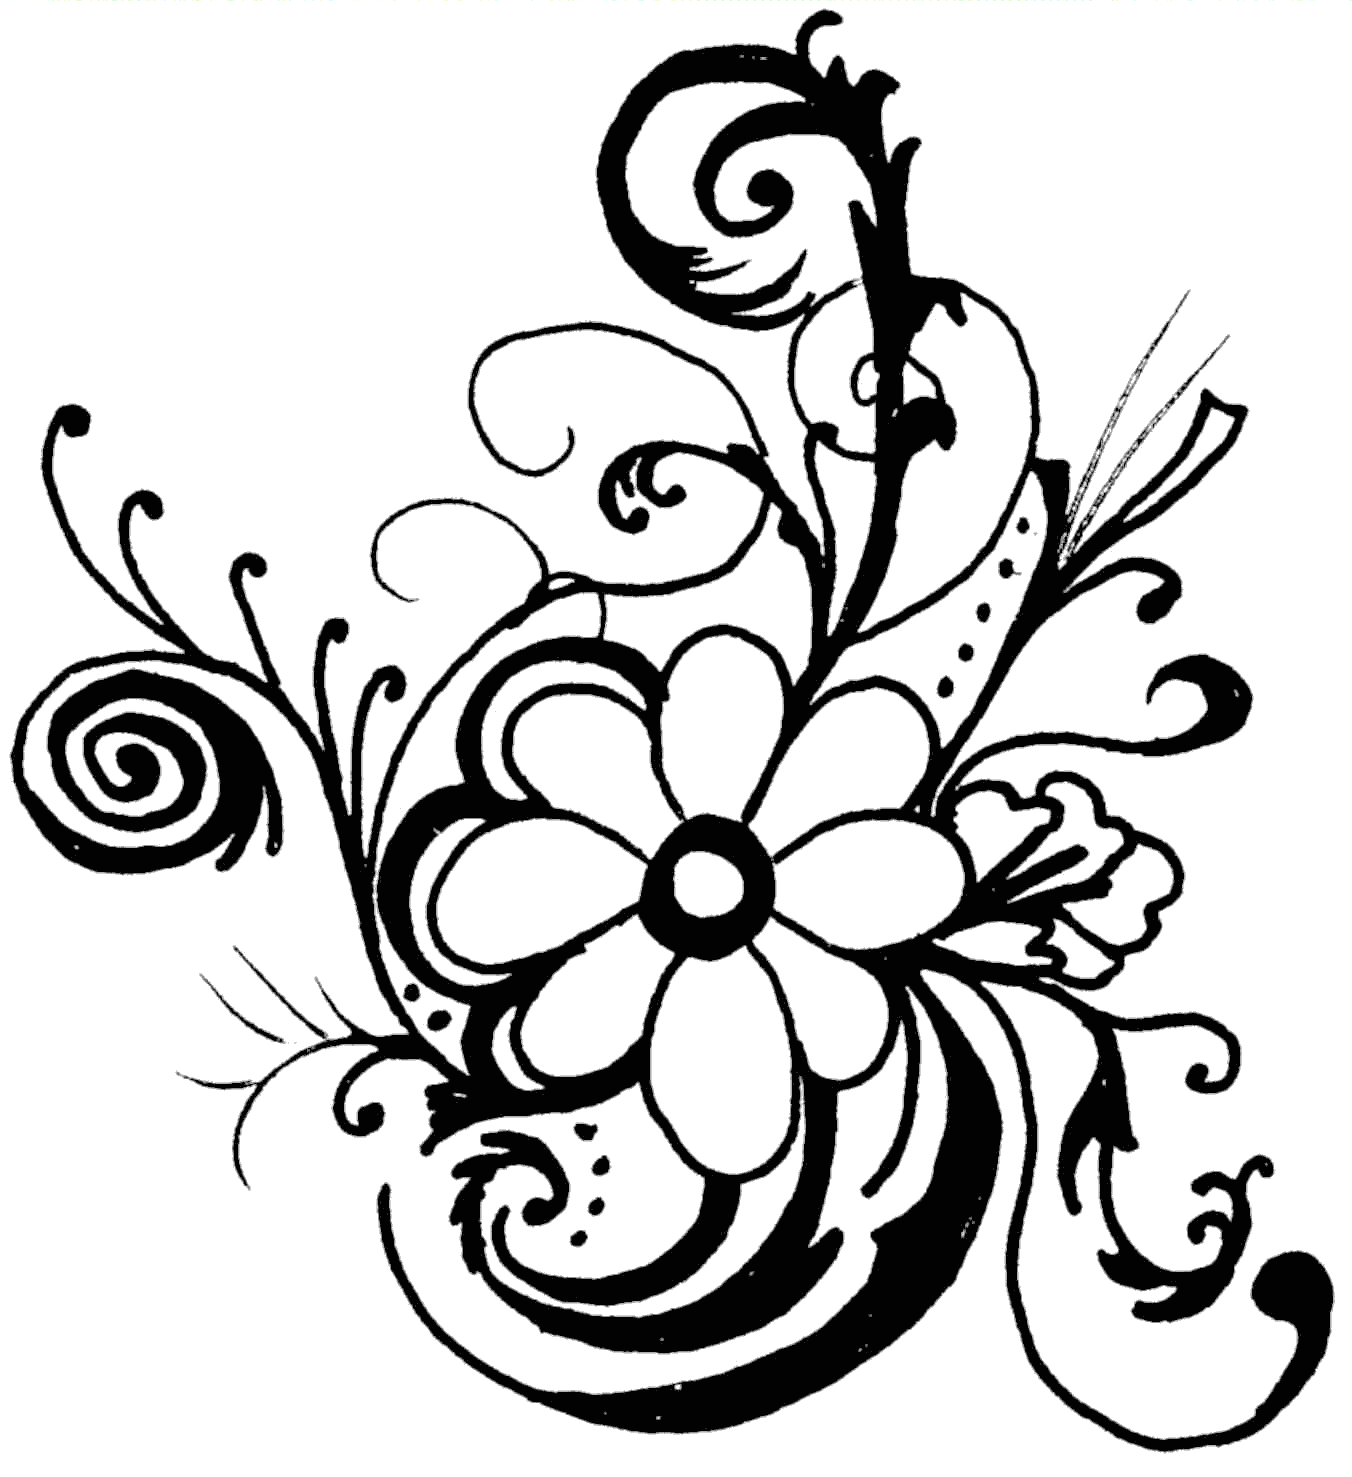 Wedding flower bouquet clipart black and white jpg freeuse stock Rose Bouquet Clipart Black And White & Rose Bouquet Clip Art Black ... jpg freeuse stock